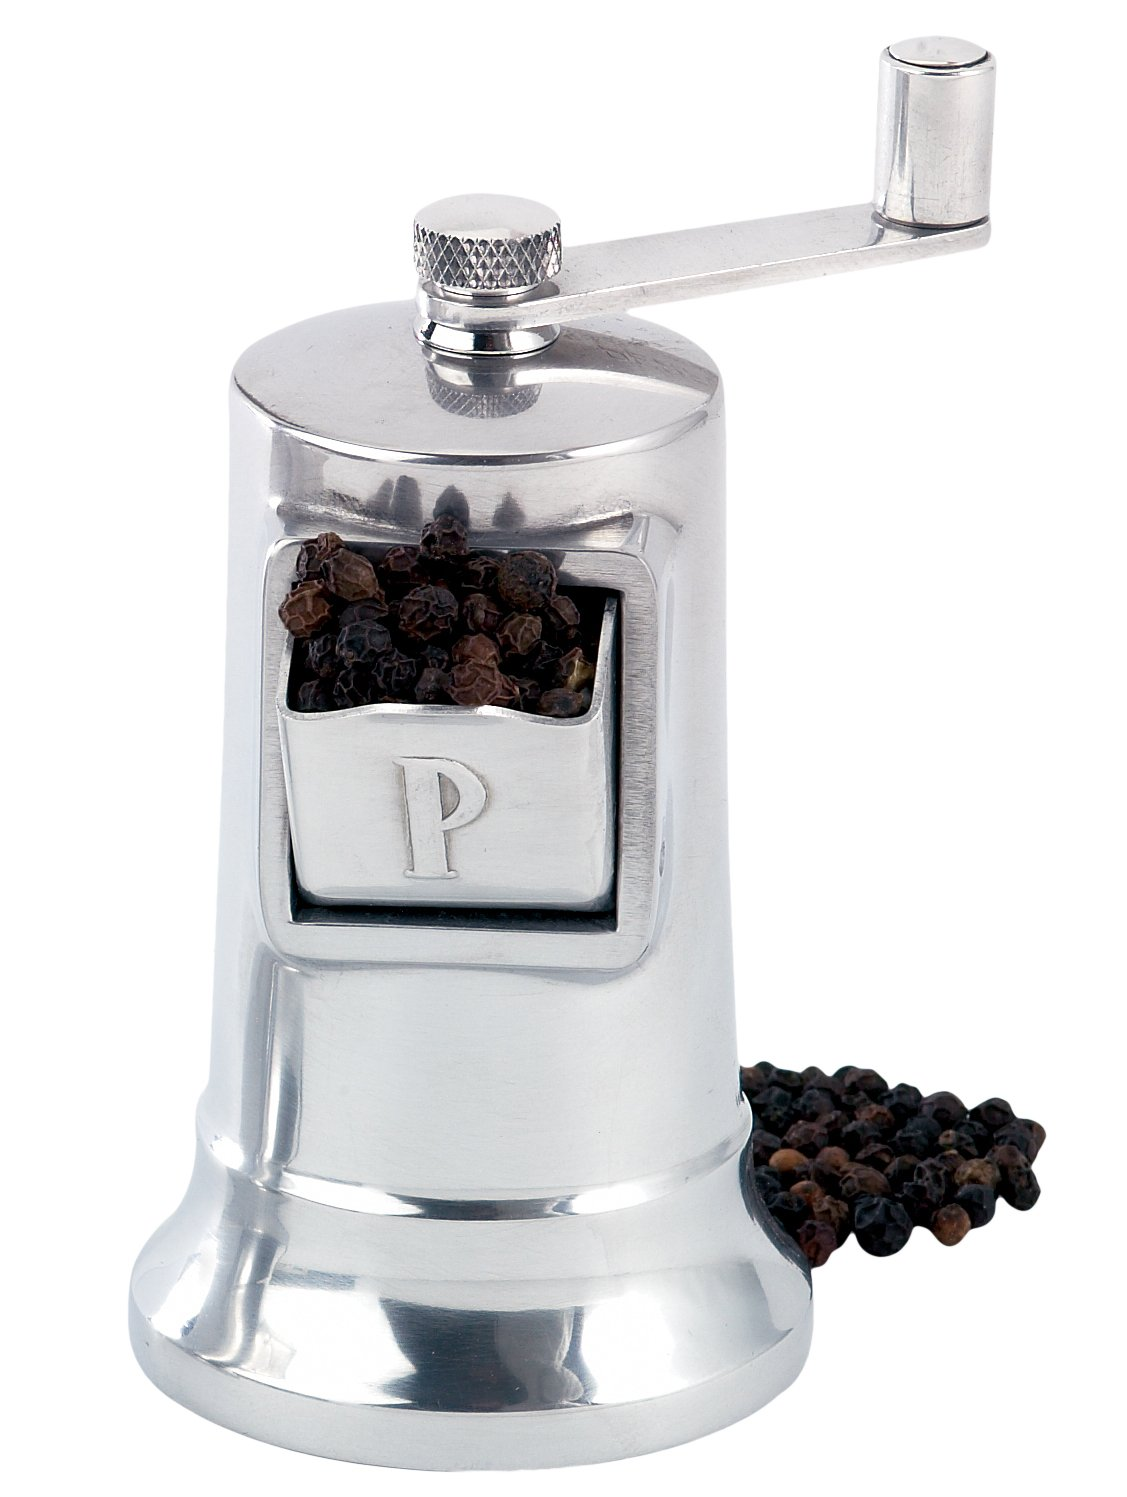 Perfex Adjustable Pepper Grinder Mill, Made in France, High-Carbon Steel Mechanism, 4.5-Inches